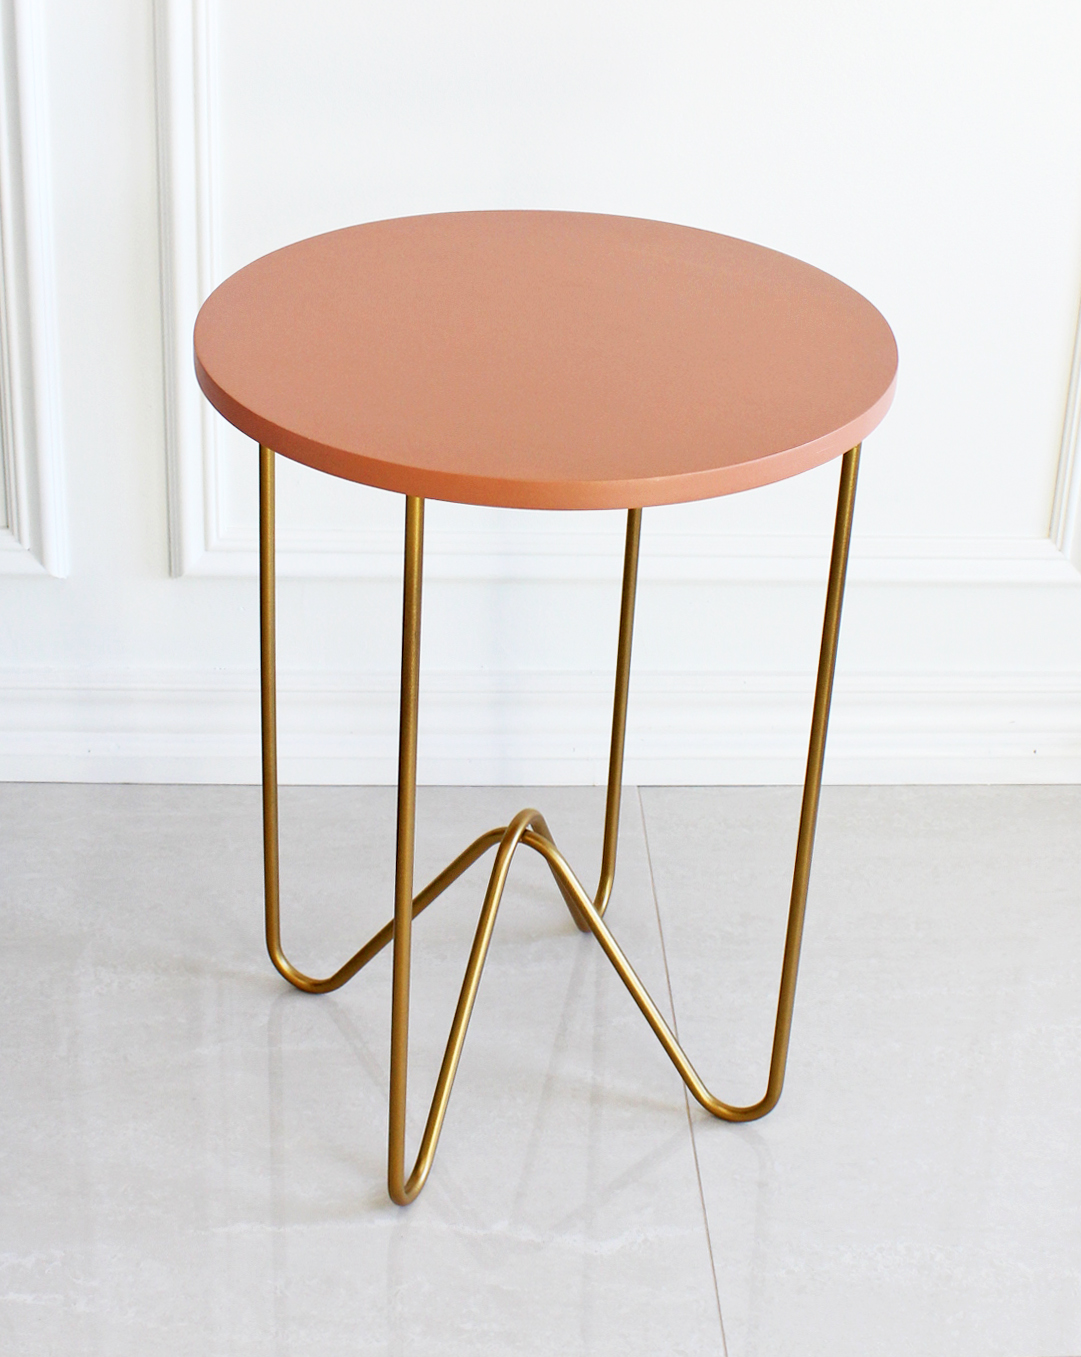 dolce vita style marble tulip side table nate berkus target round gold peach cast metal accent and this from the spring collection having second thoughts about colored tabletop